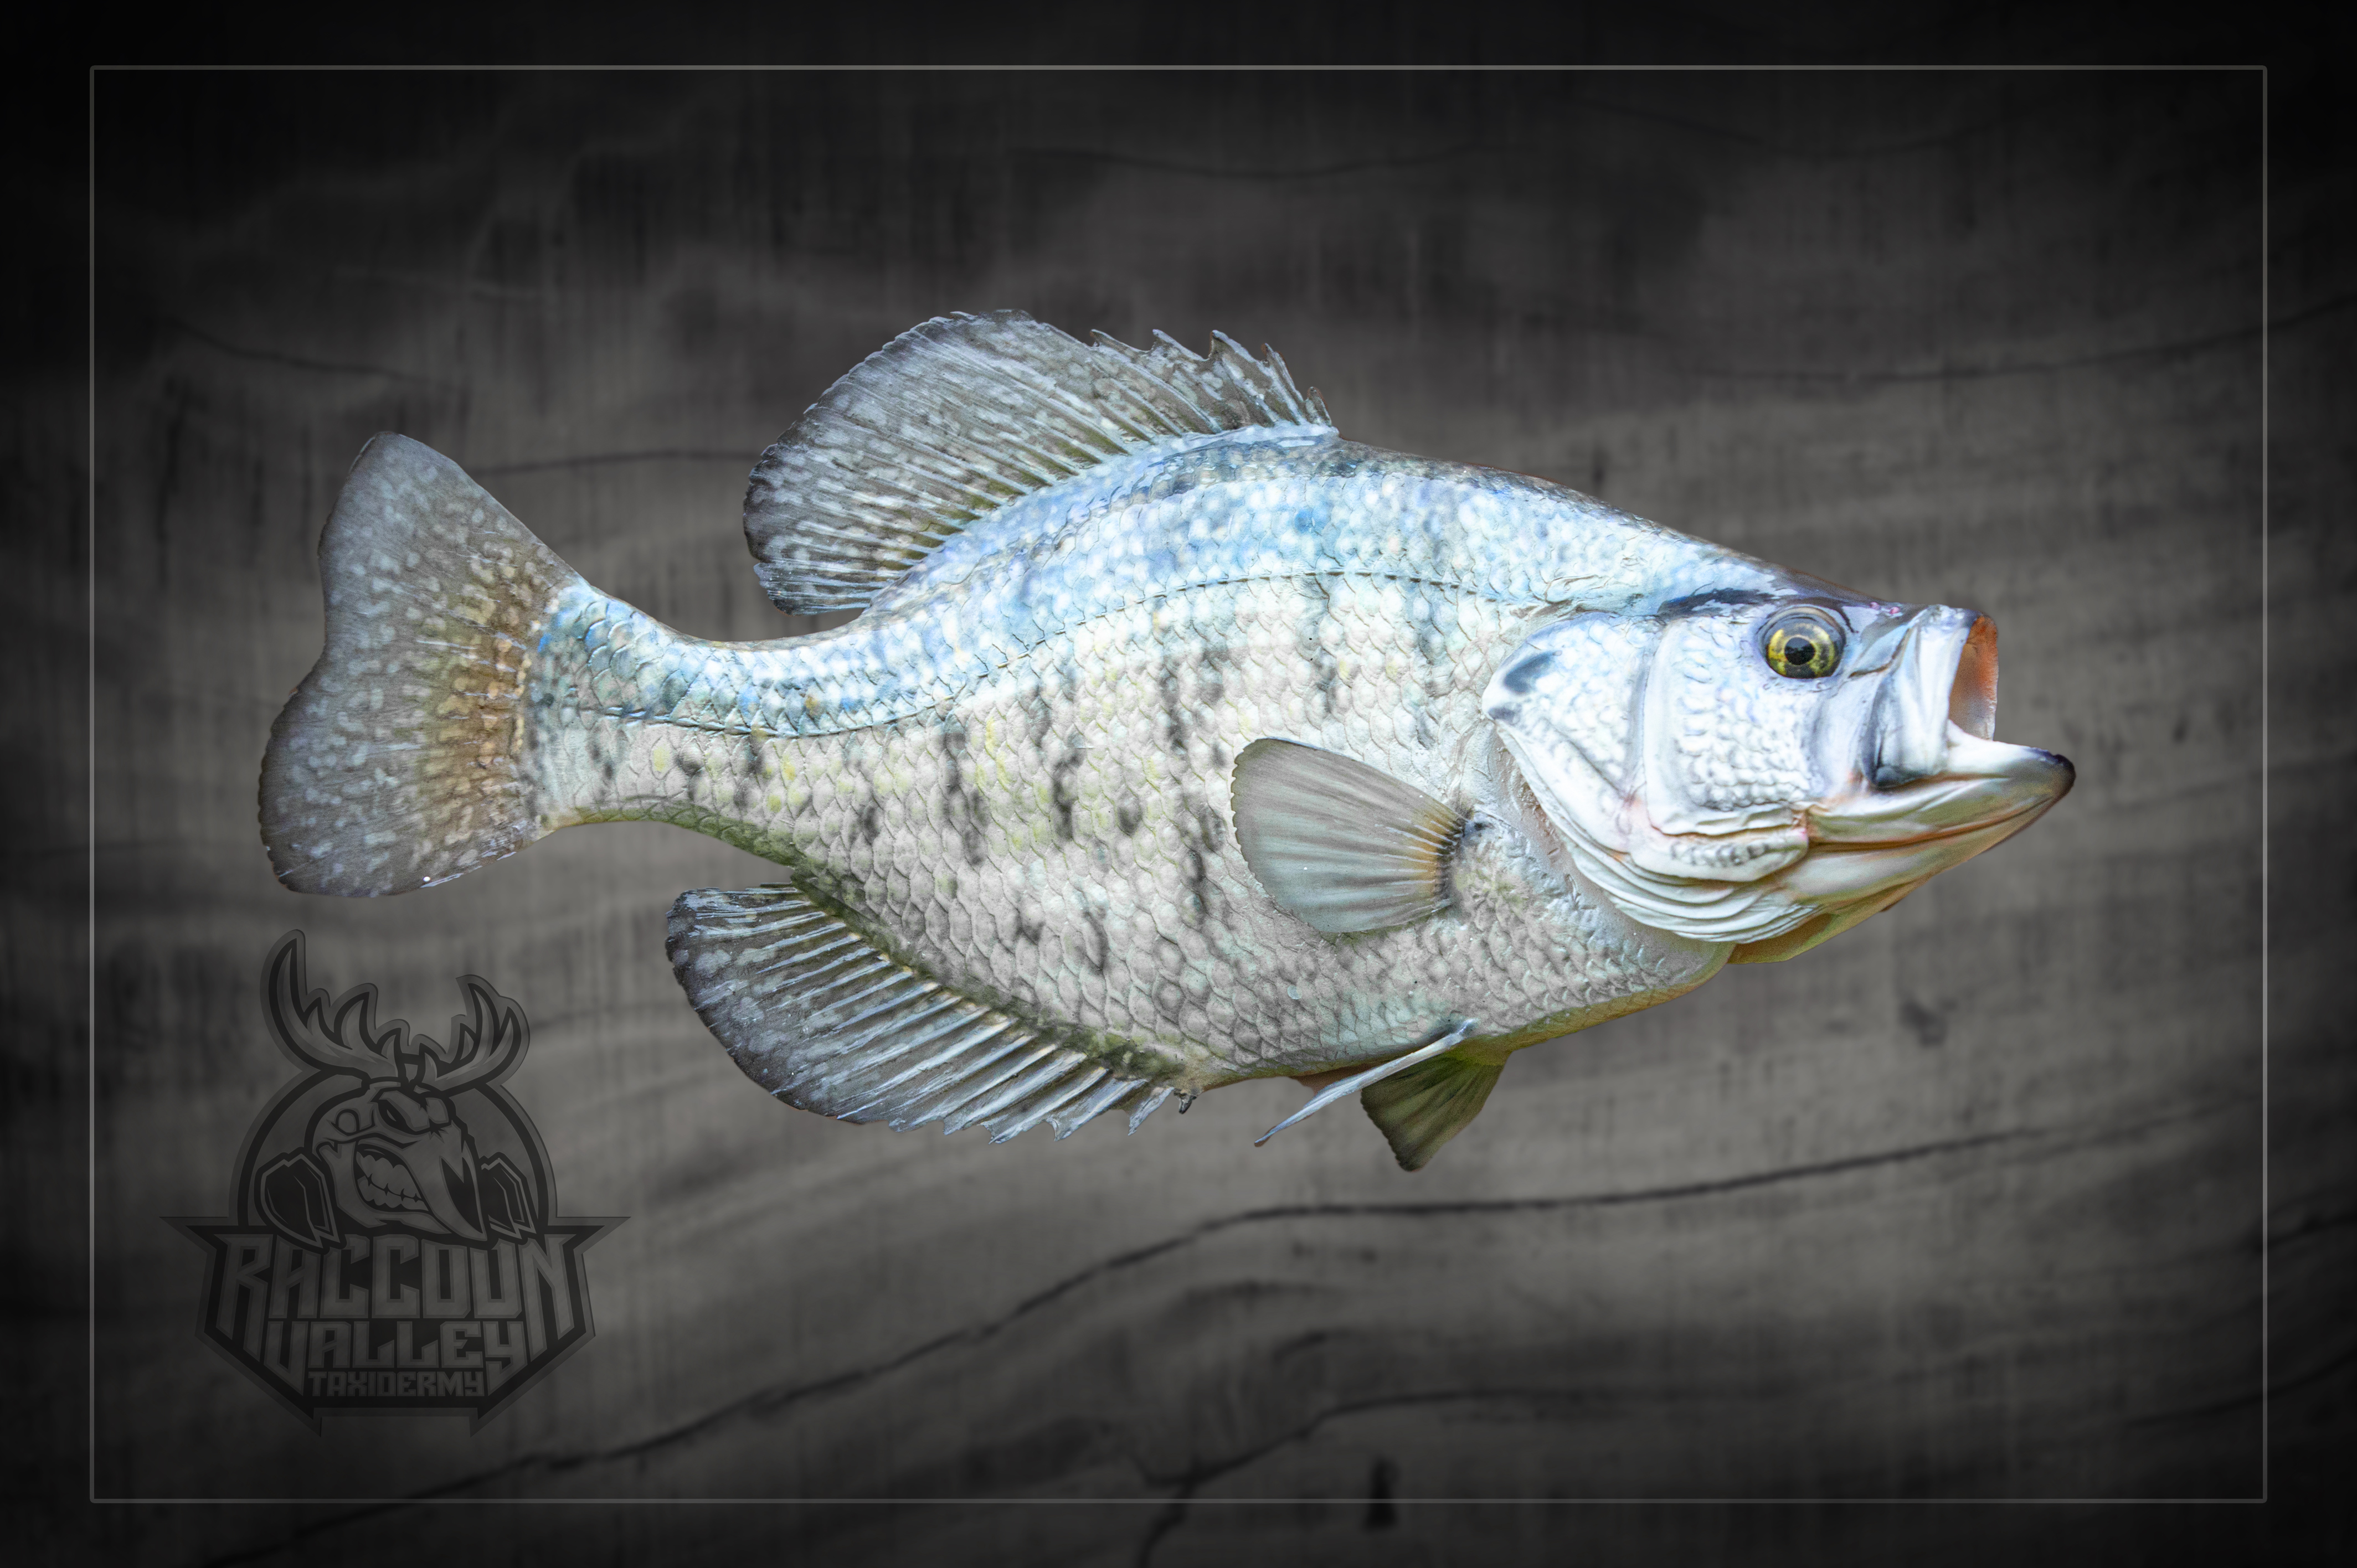 Crappie Reproduction